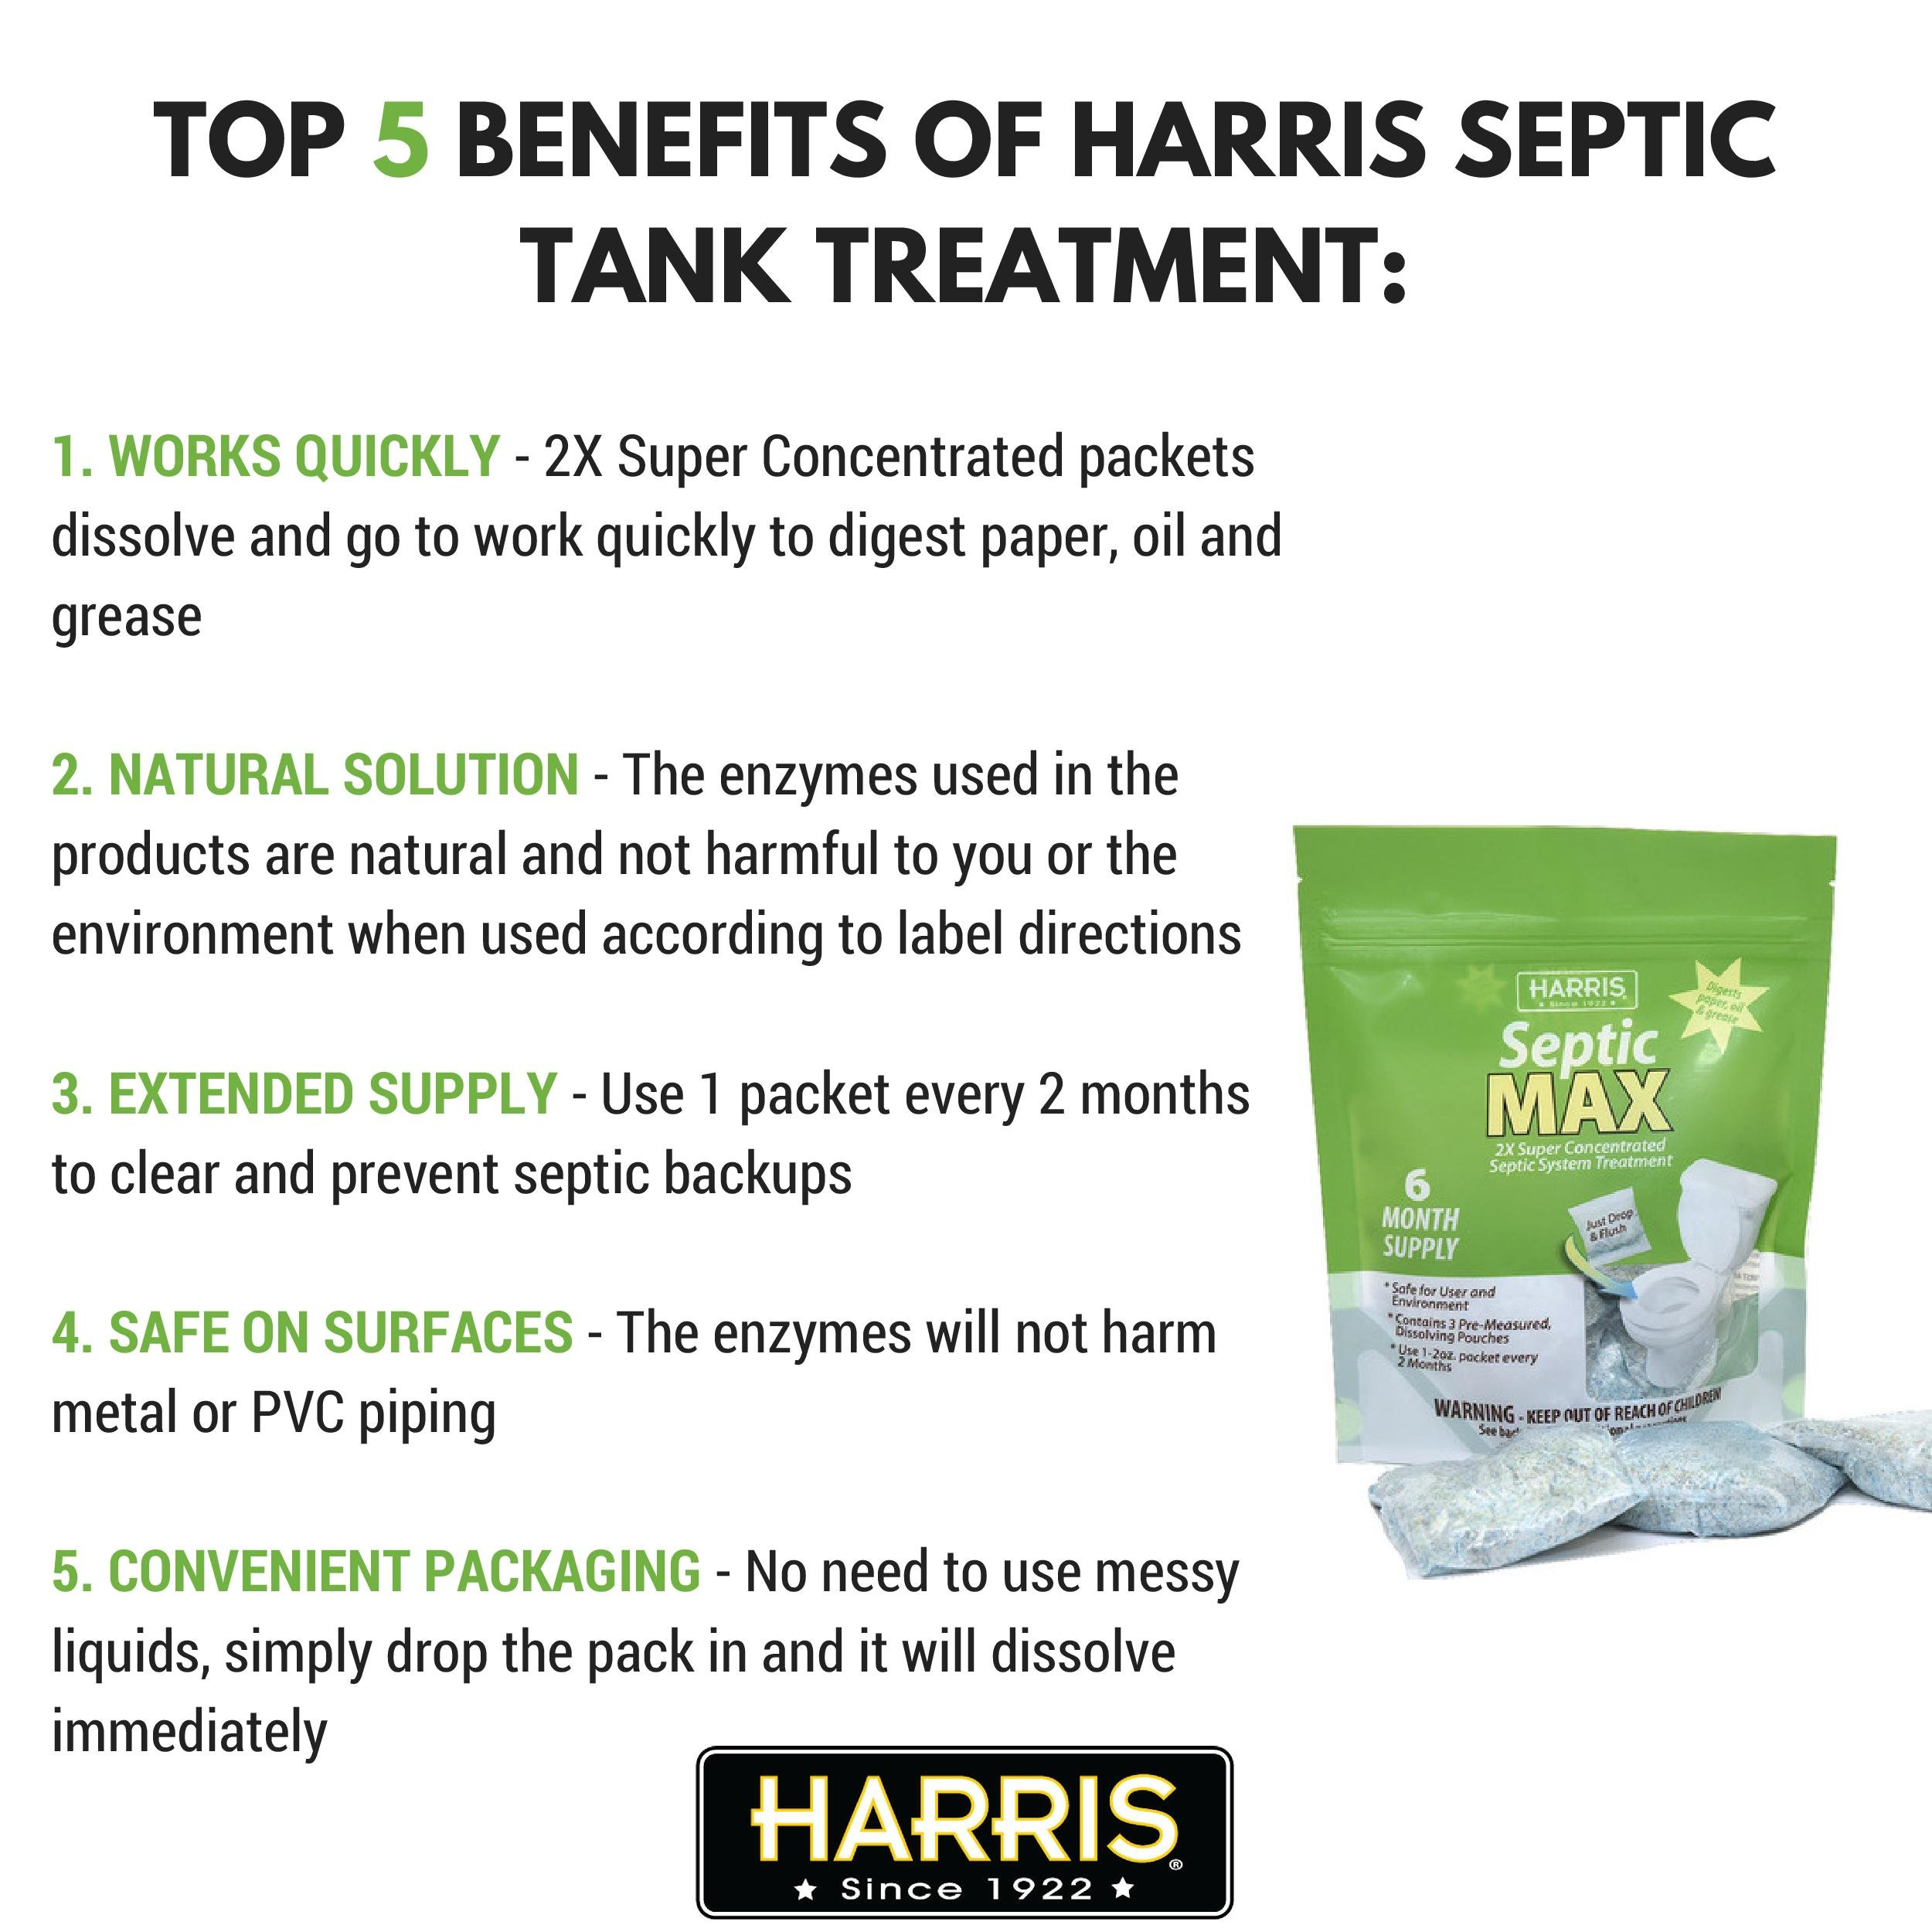 Harris Natural Enzyme Septic Tank Treatment, 6-Month Powder Packet Supply